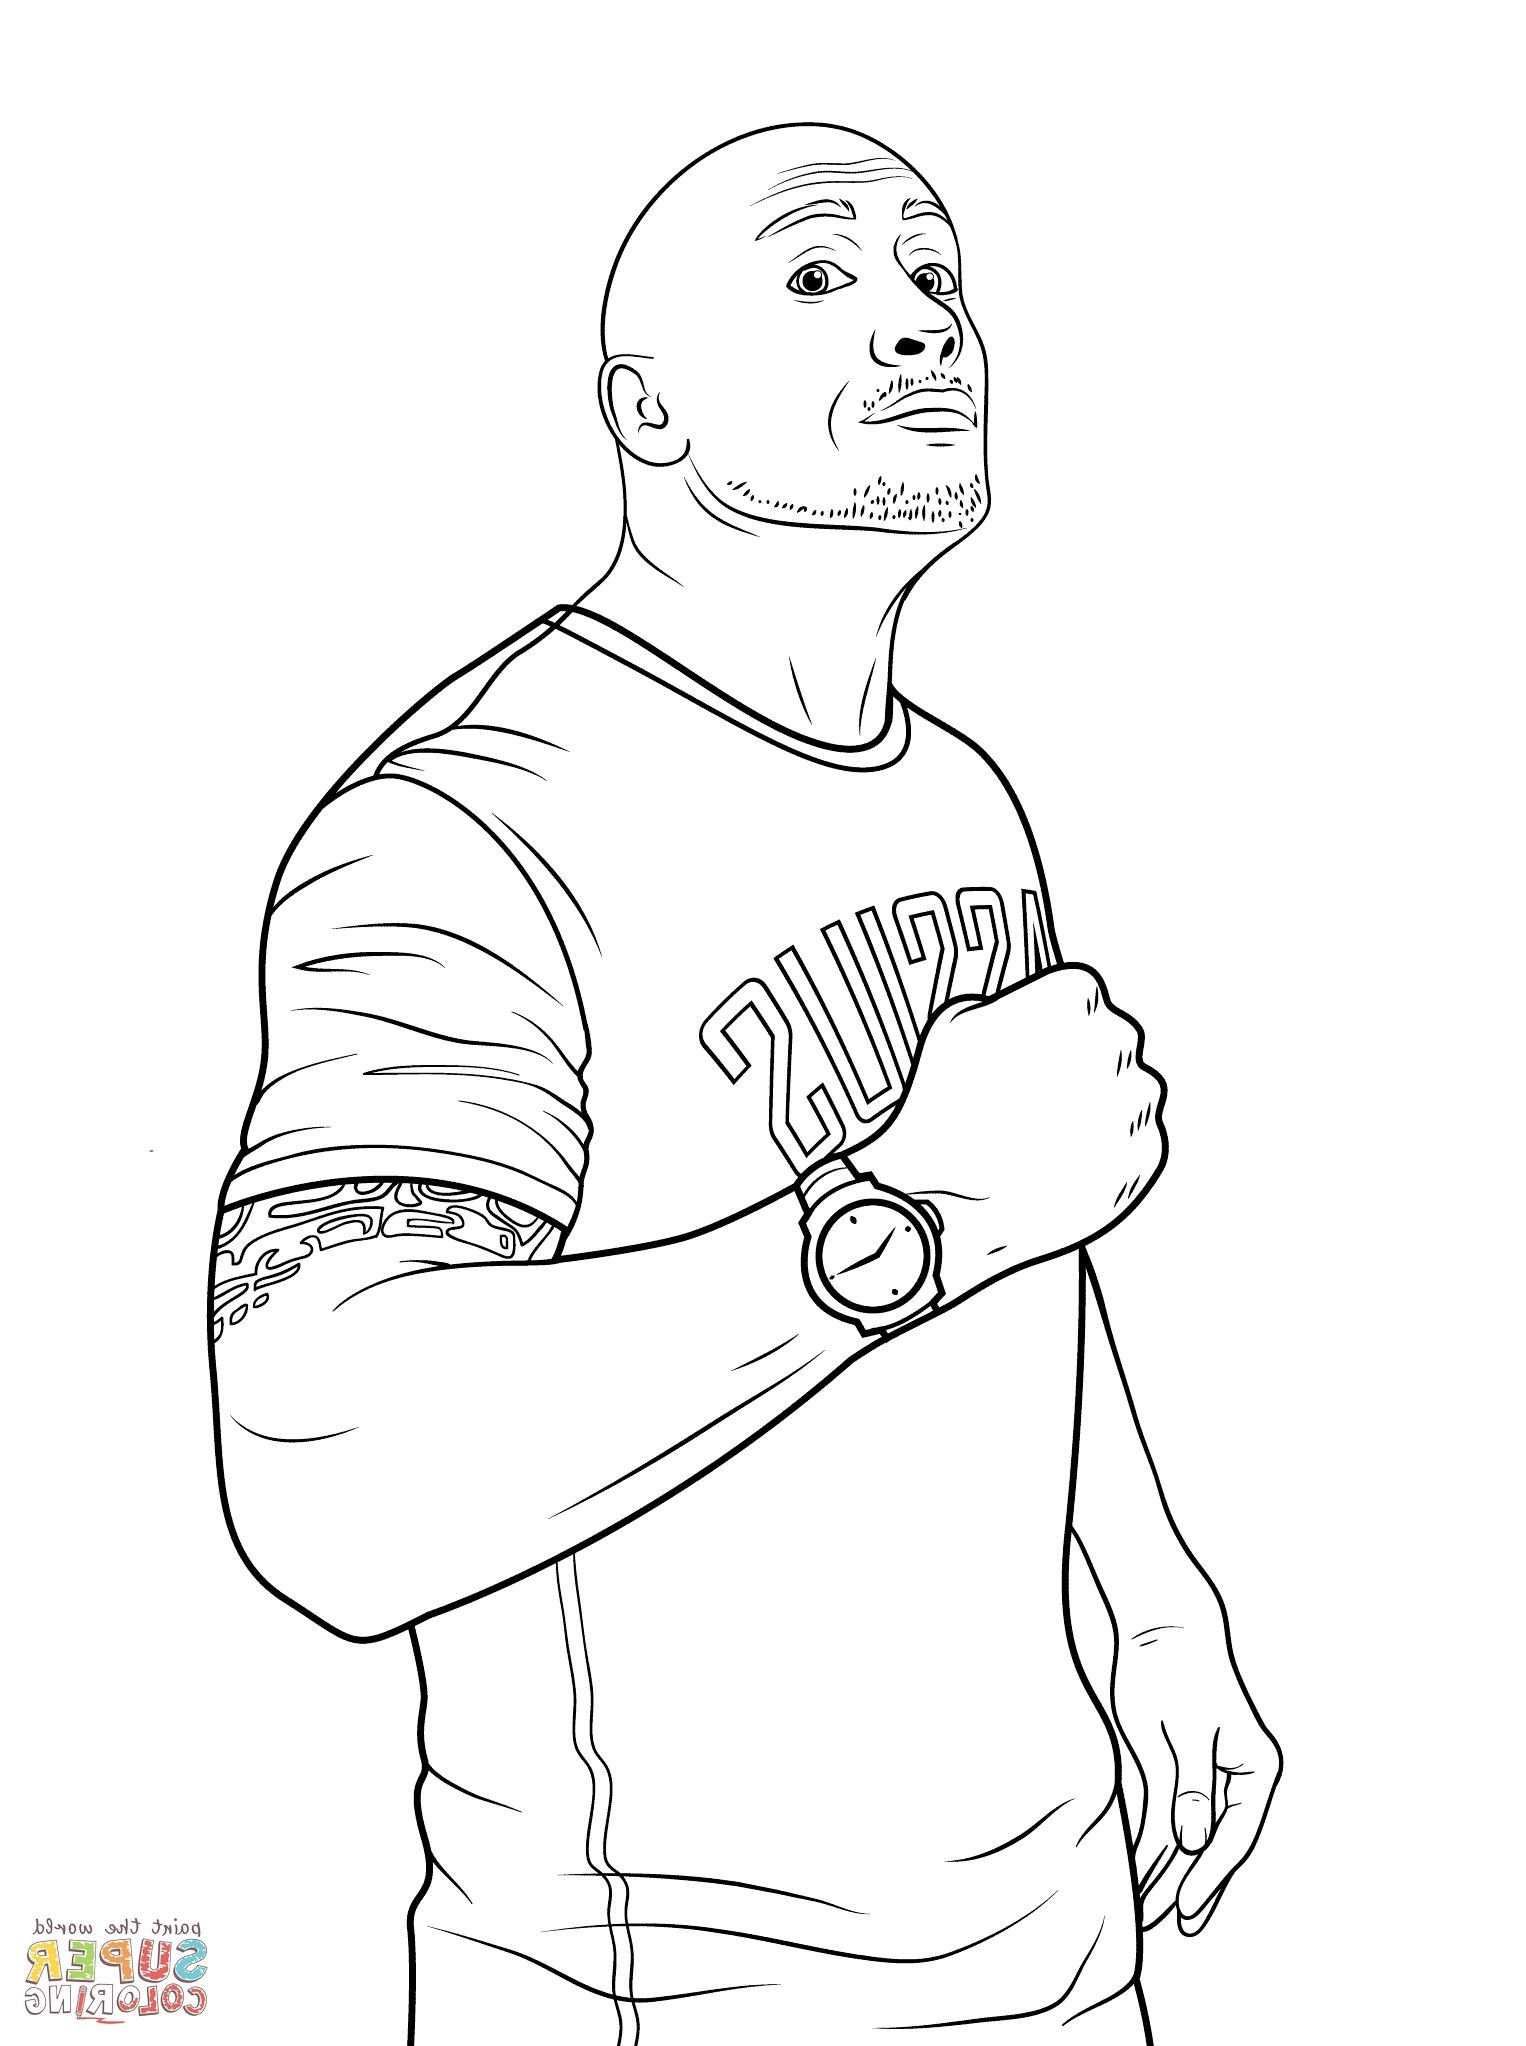 Wwe Coloring Books Wwe Coloring Pages Coloring Pages Sports Coloring Pages